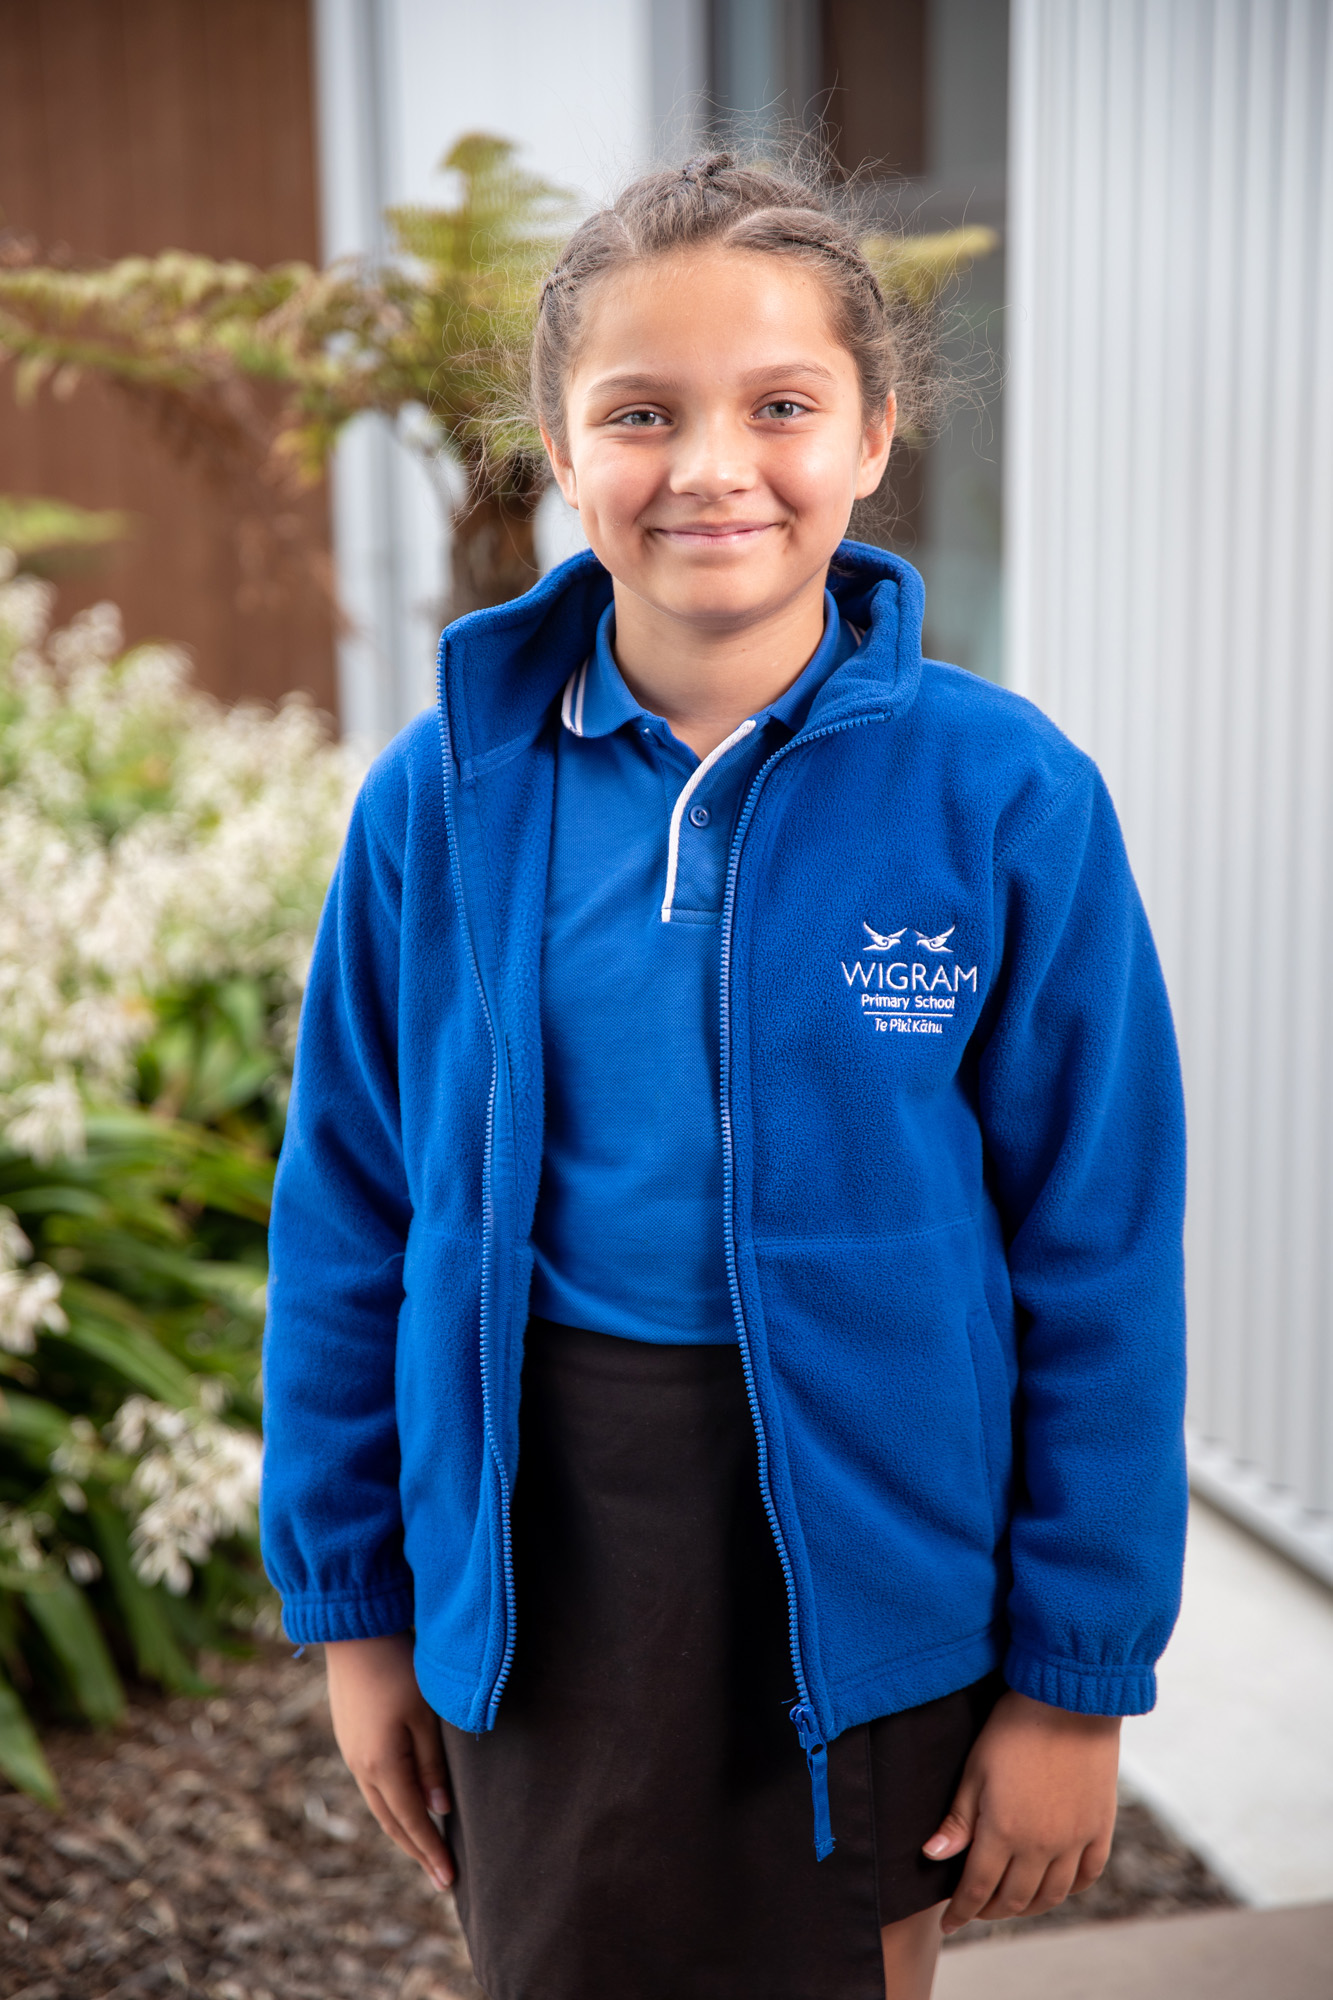 wigram primary blue polo shirt and blue fleece worn by female student